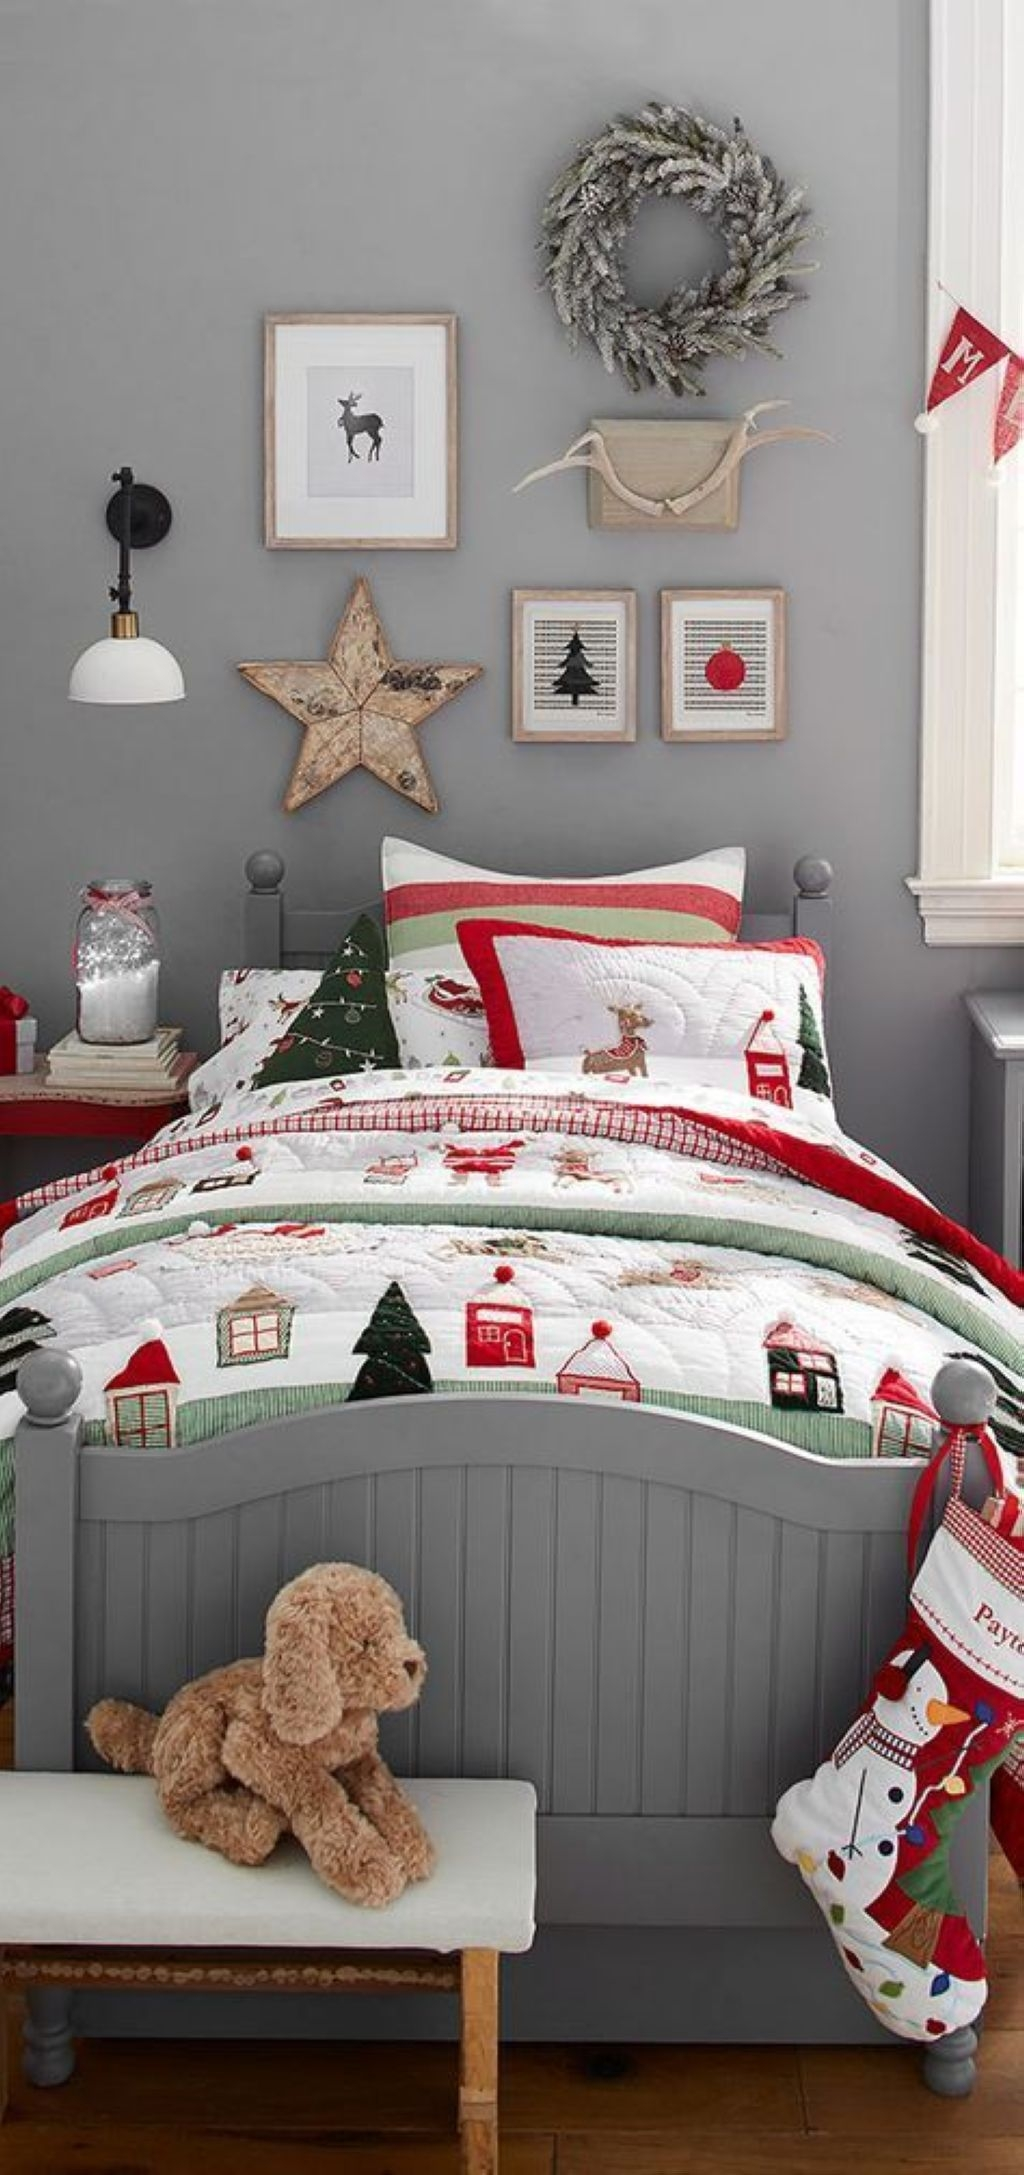 Give your little ones bed a playful dose of tis the season style with plenty of cozy layers